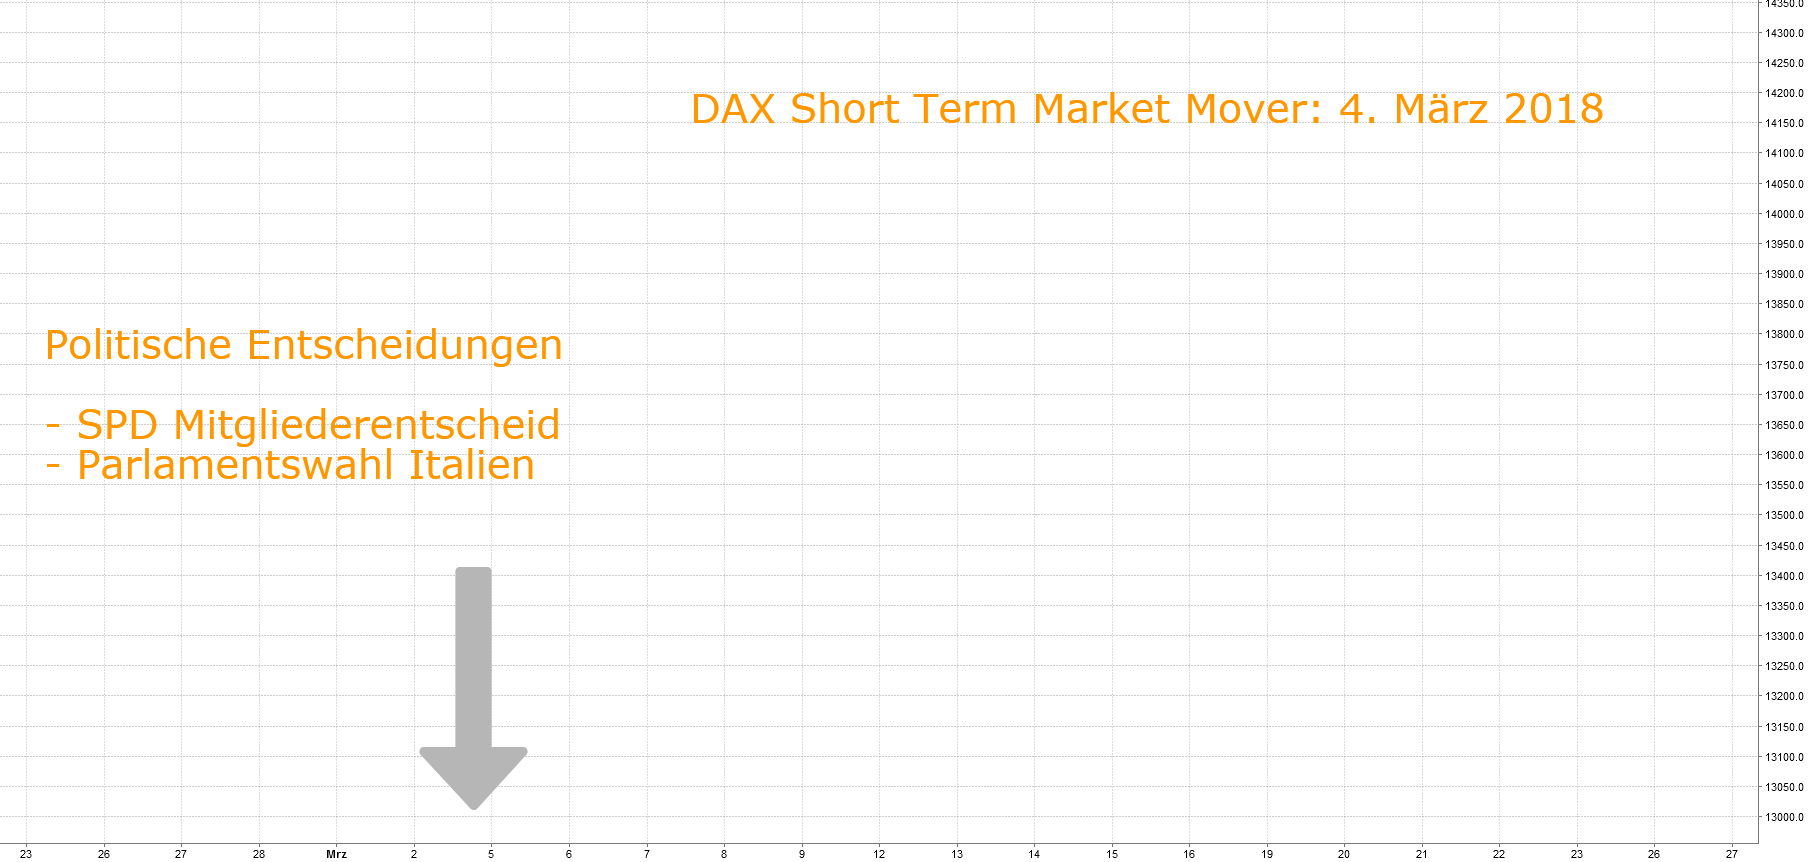 Short Term Market Mover: 4. März 2018